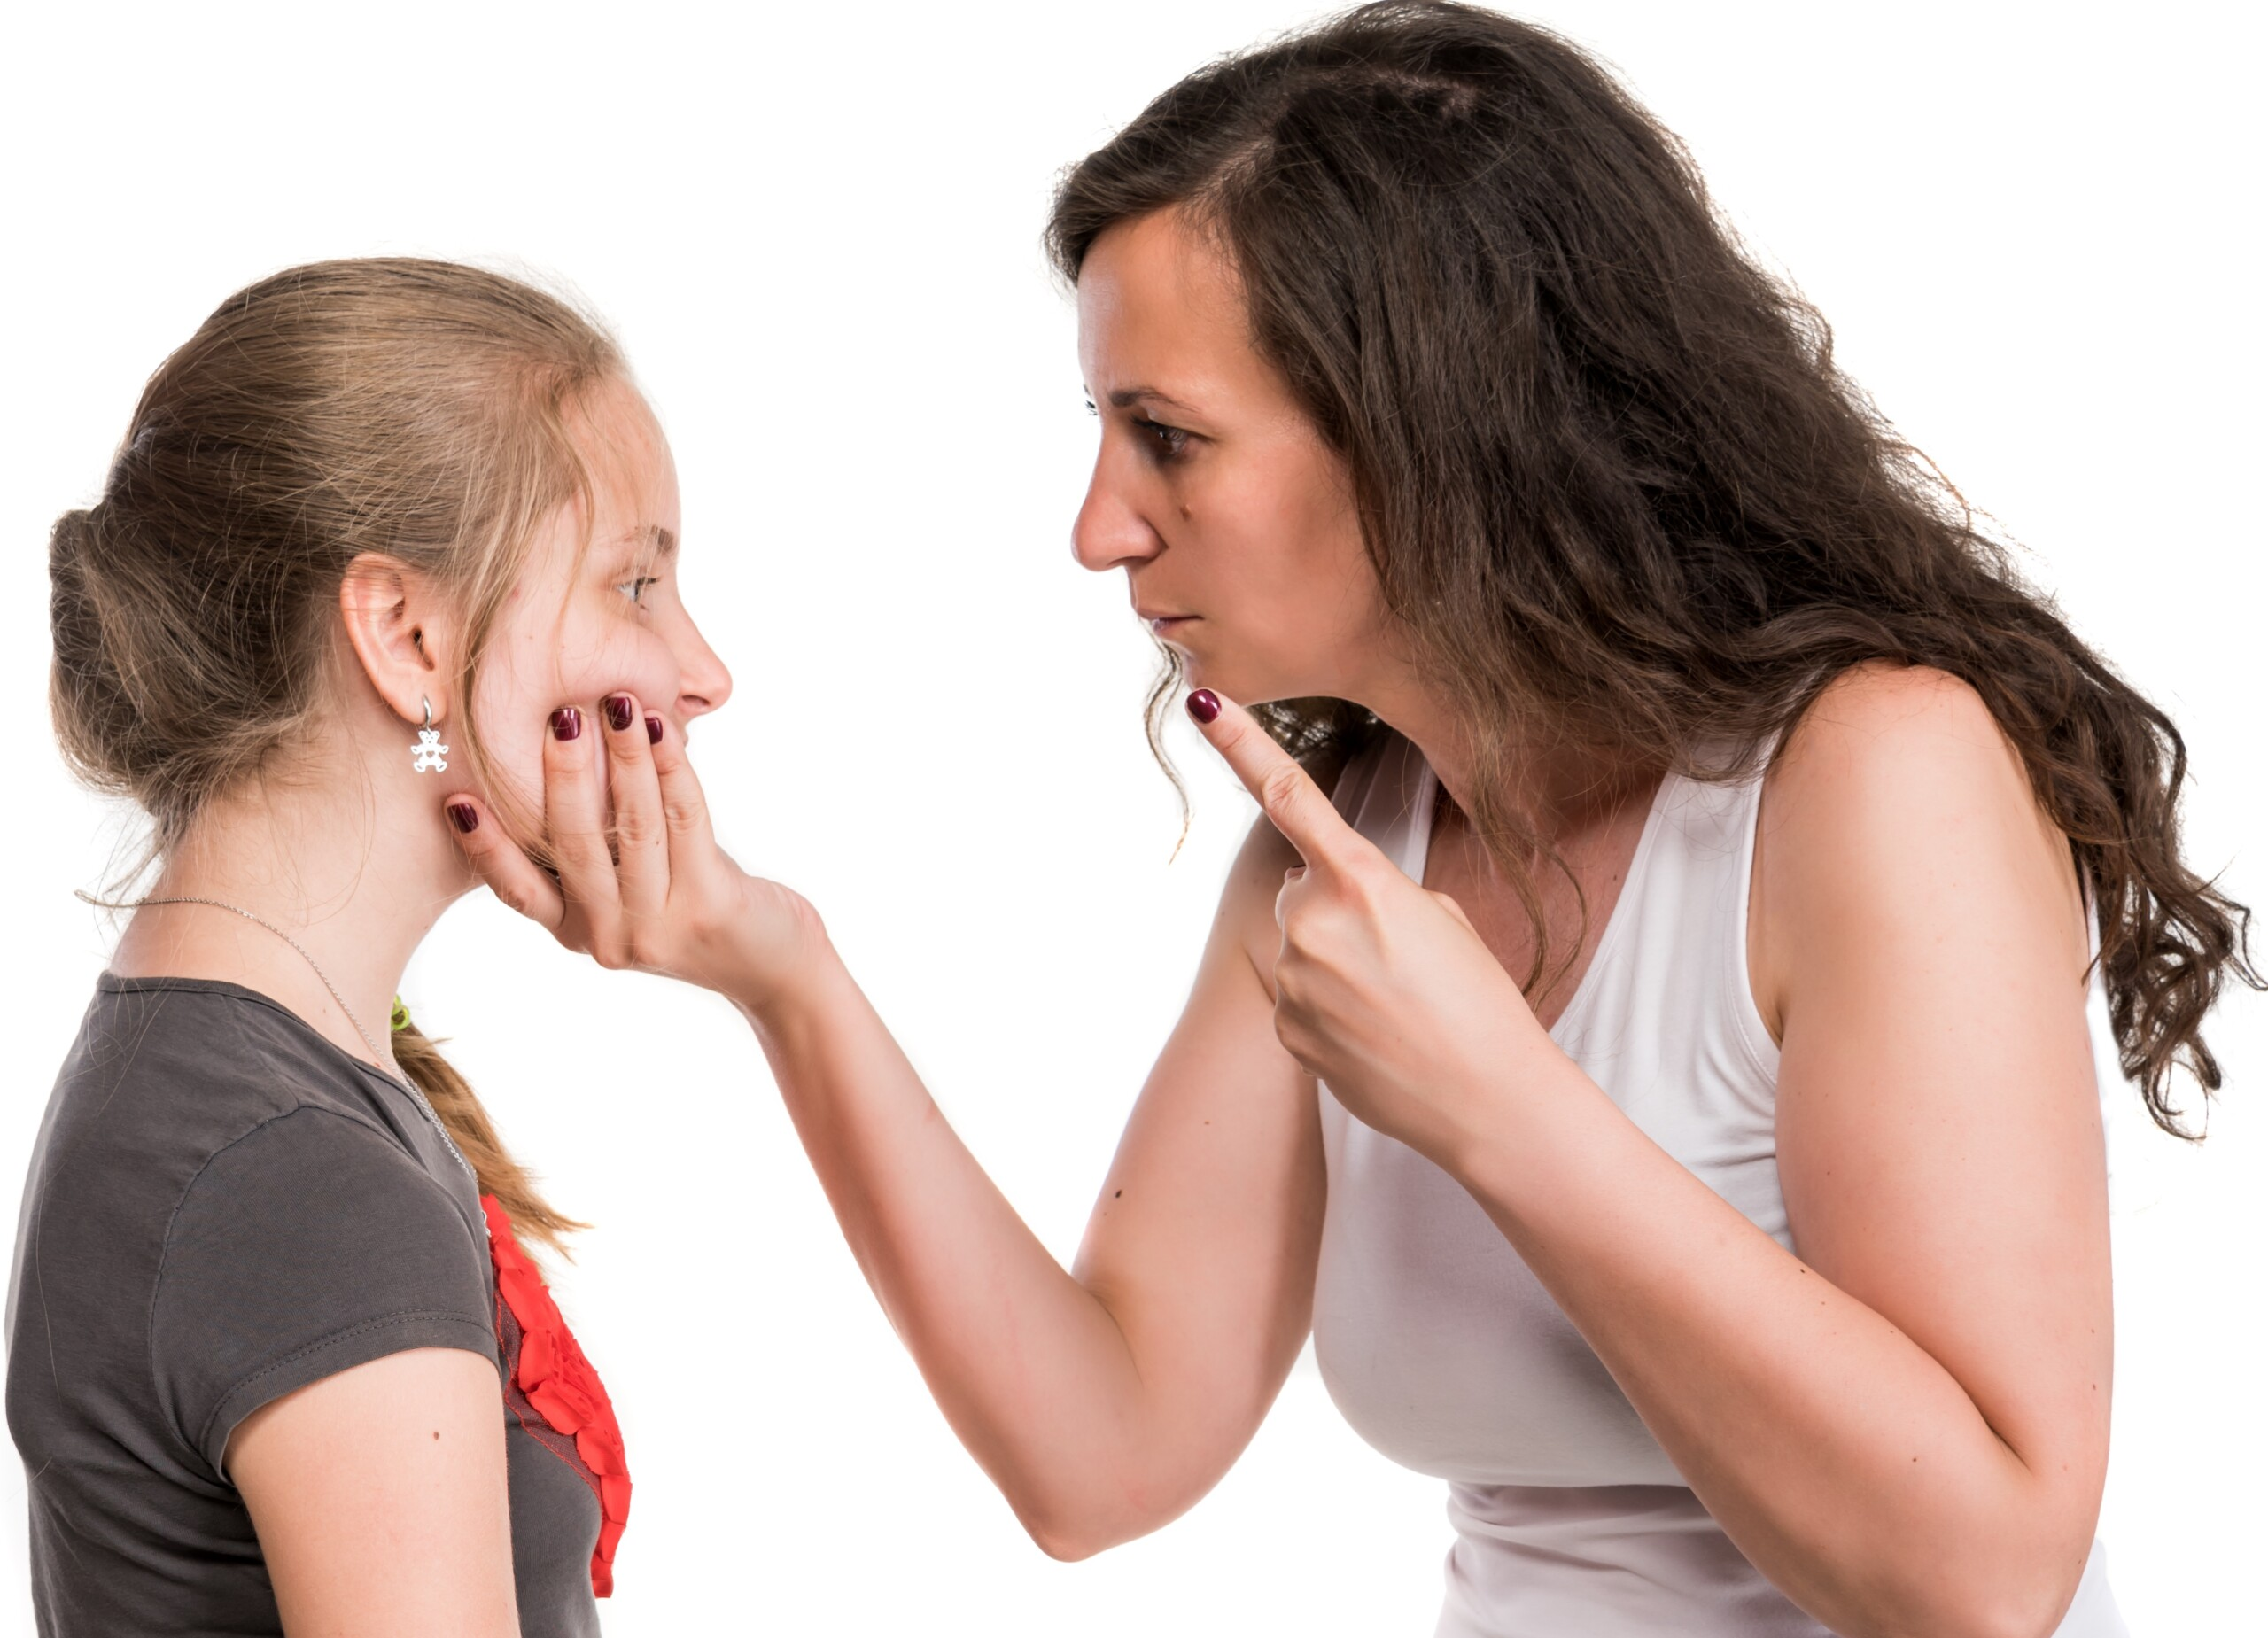 Do Kids Learn Bullying from Their Parents or Is This a Myth?